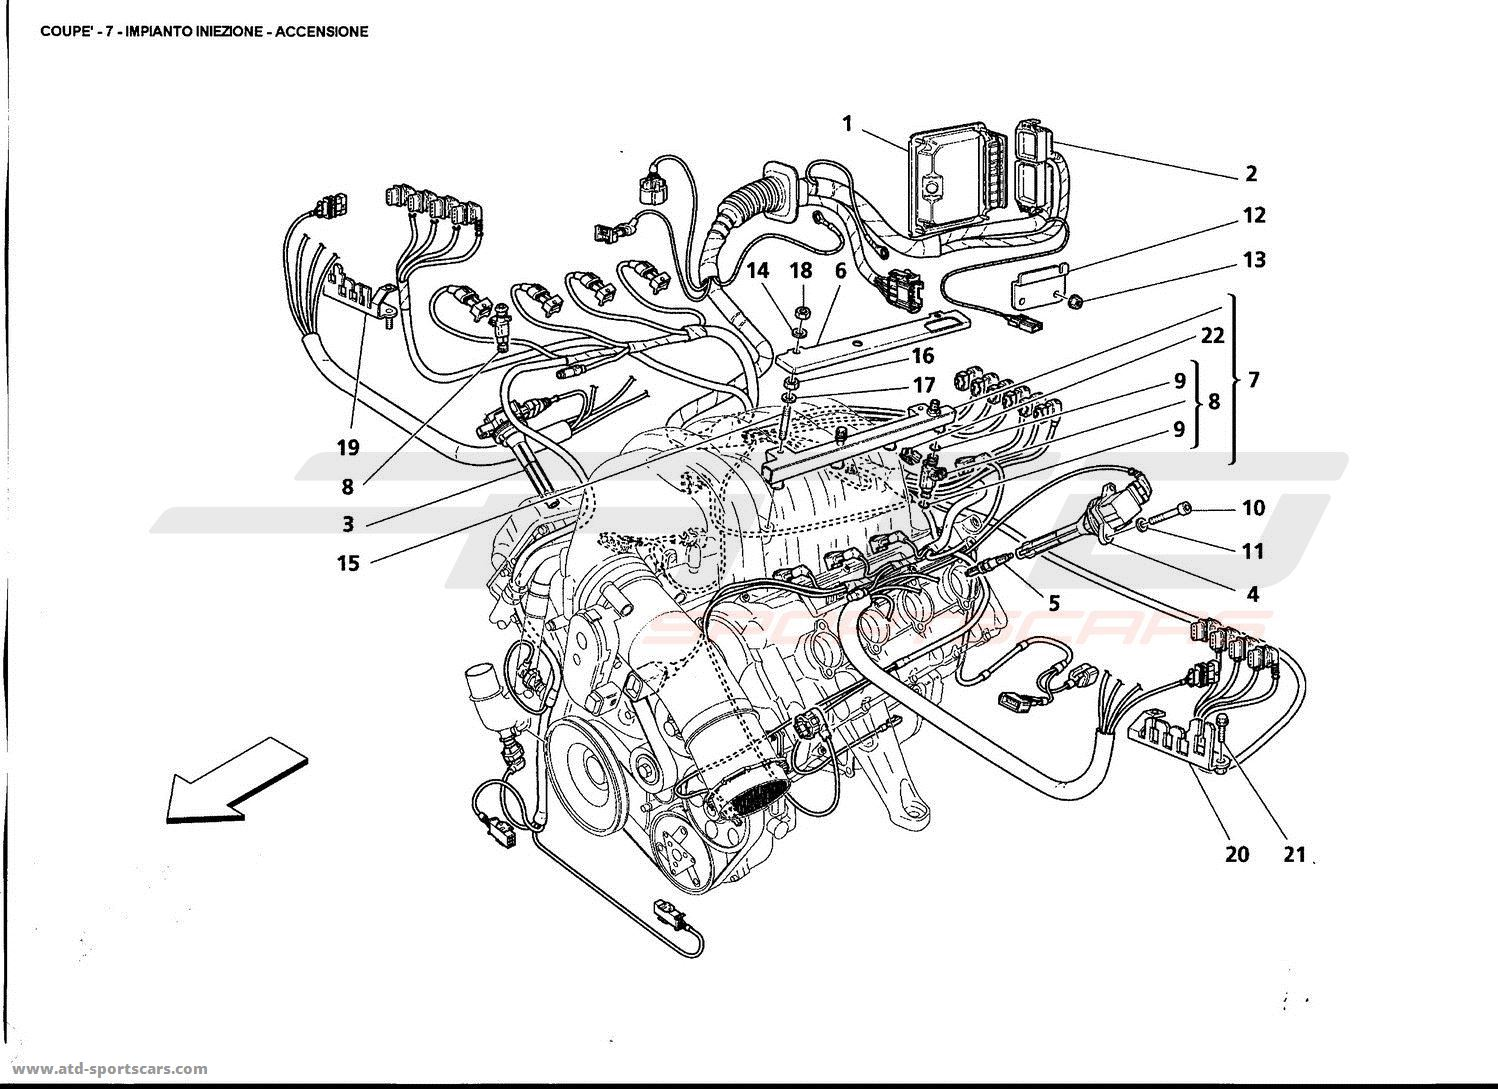 Alfa Romeo 156 Fuse Box Cover Guide And Troubleshooting Of Wiring Diagram For Gt Maserati Biturbo Diagrams Opel 147